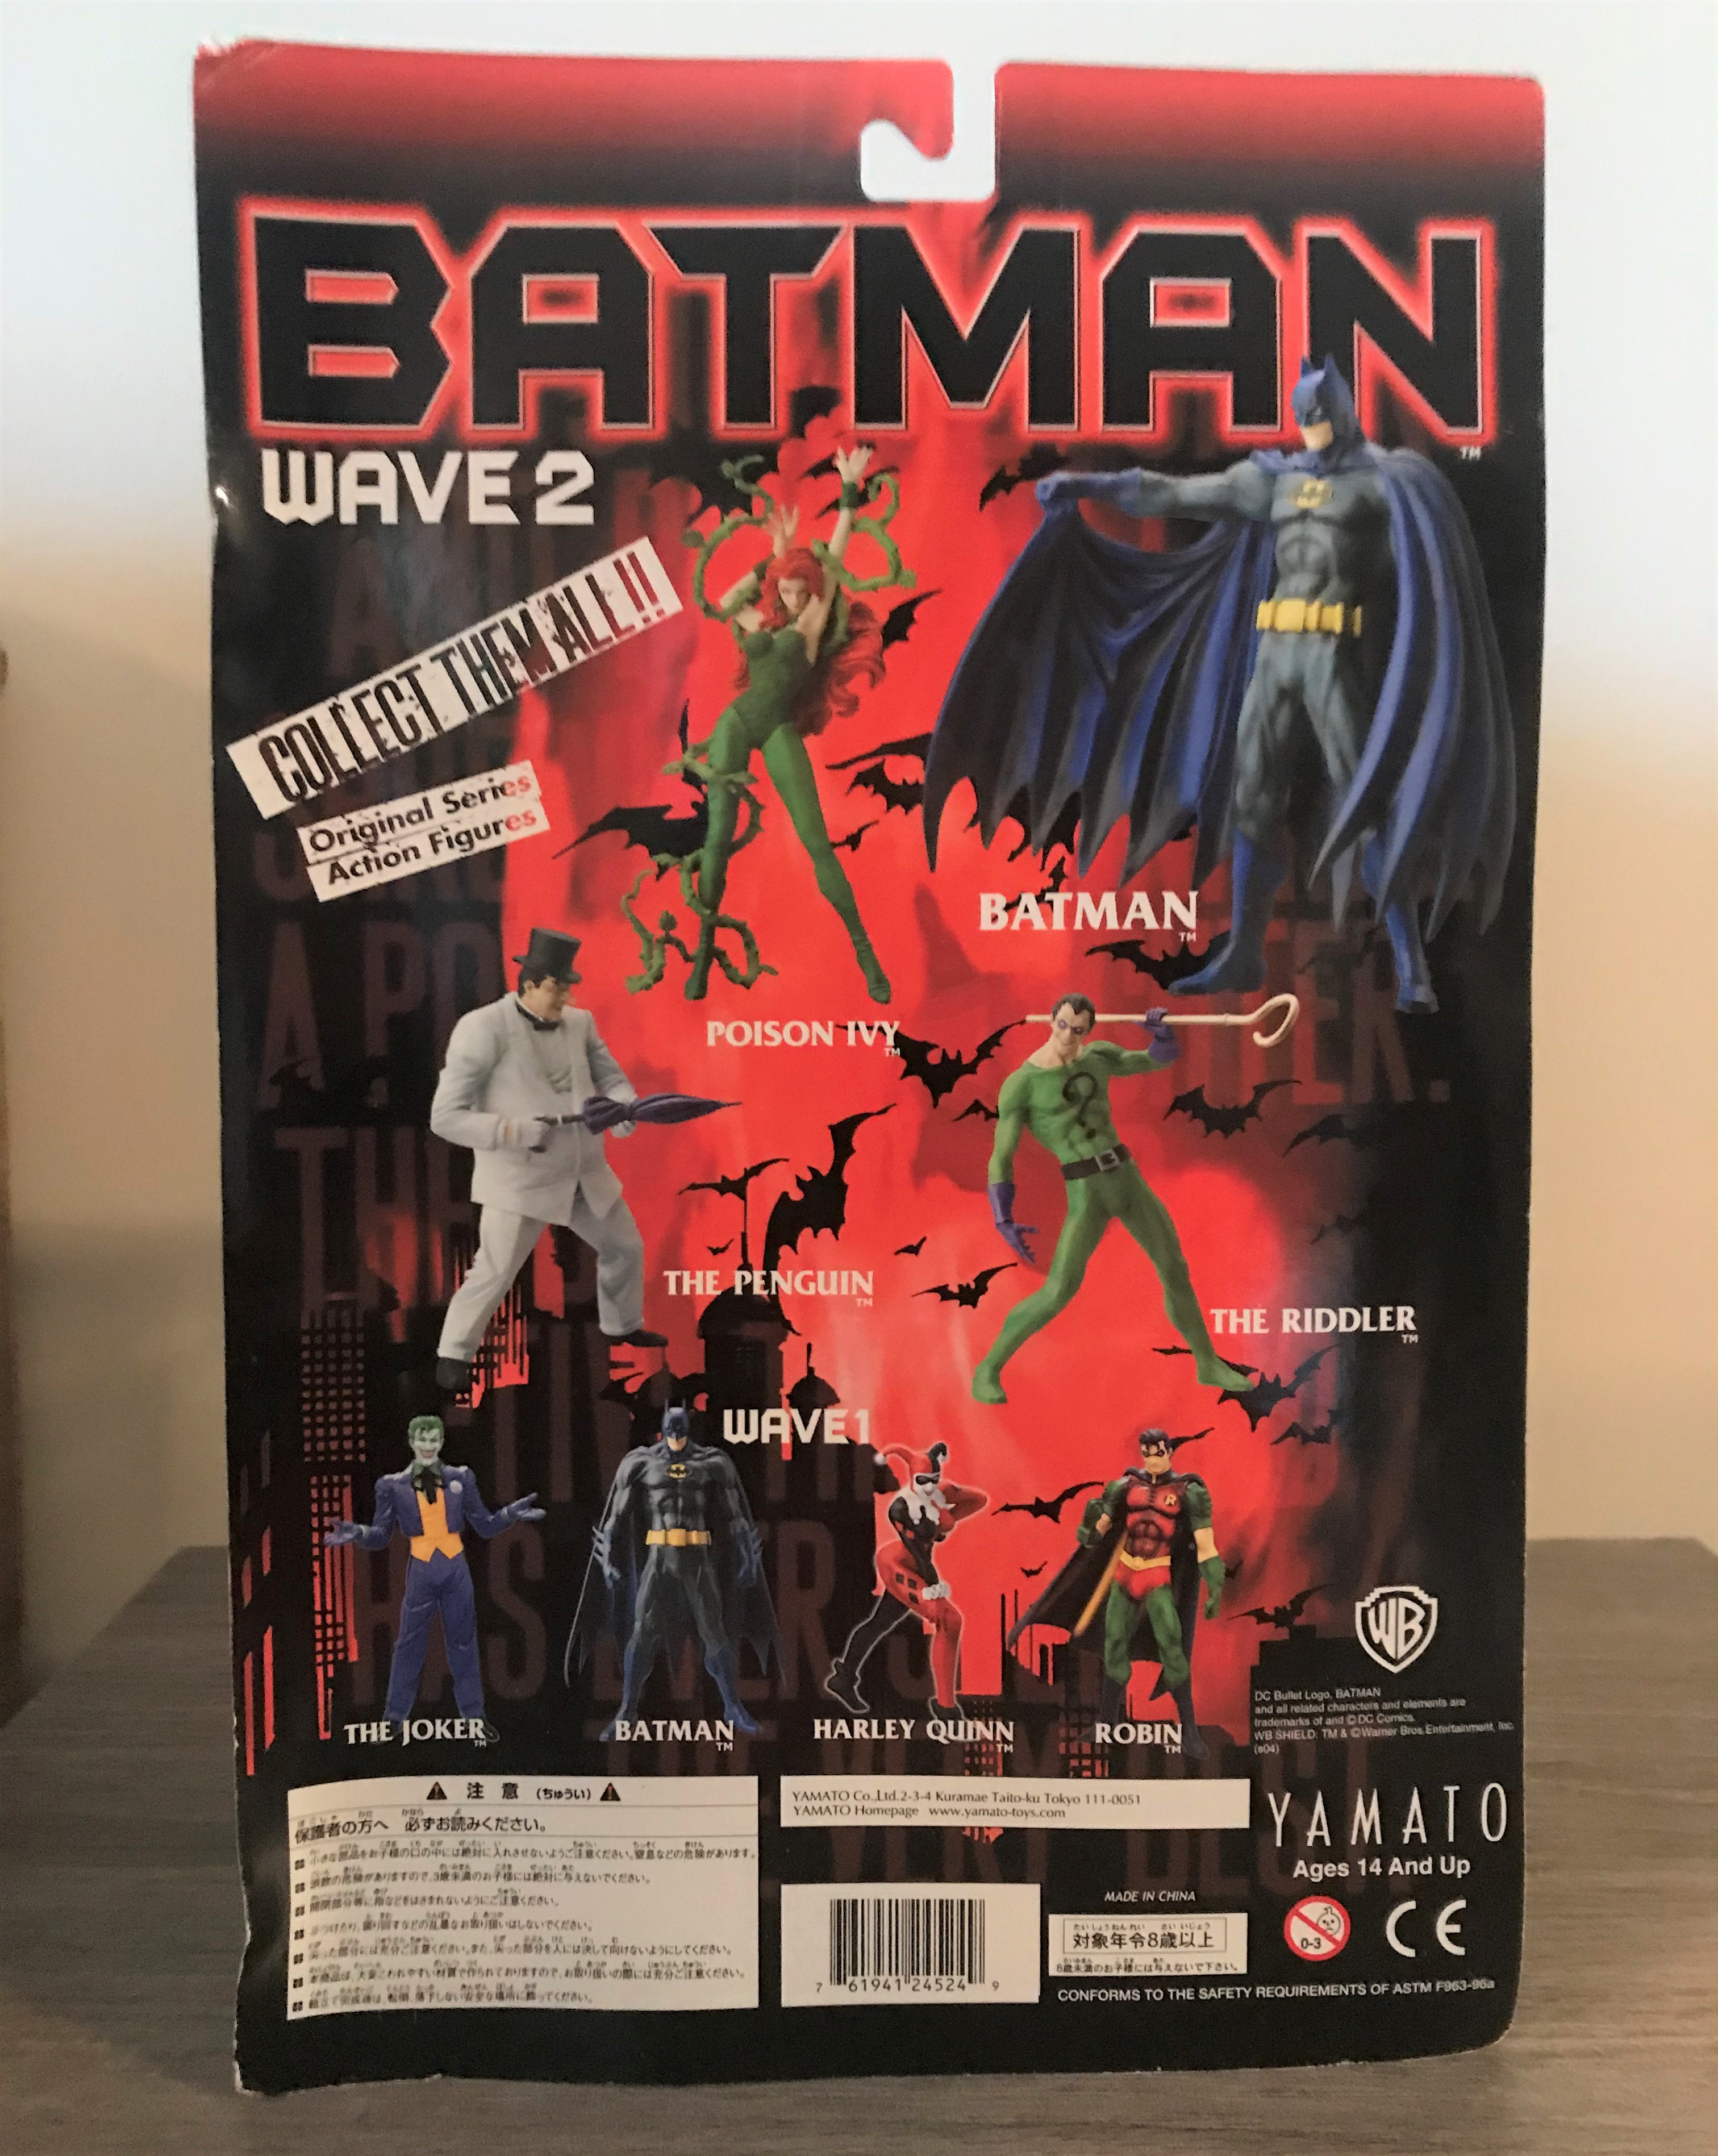 The Riddler, Gotham's Guardian Against Crime, Wave 2 0761941245249 Yamato